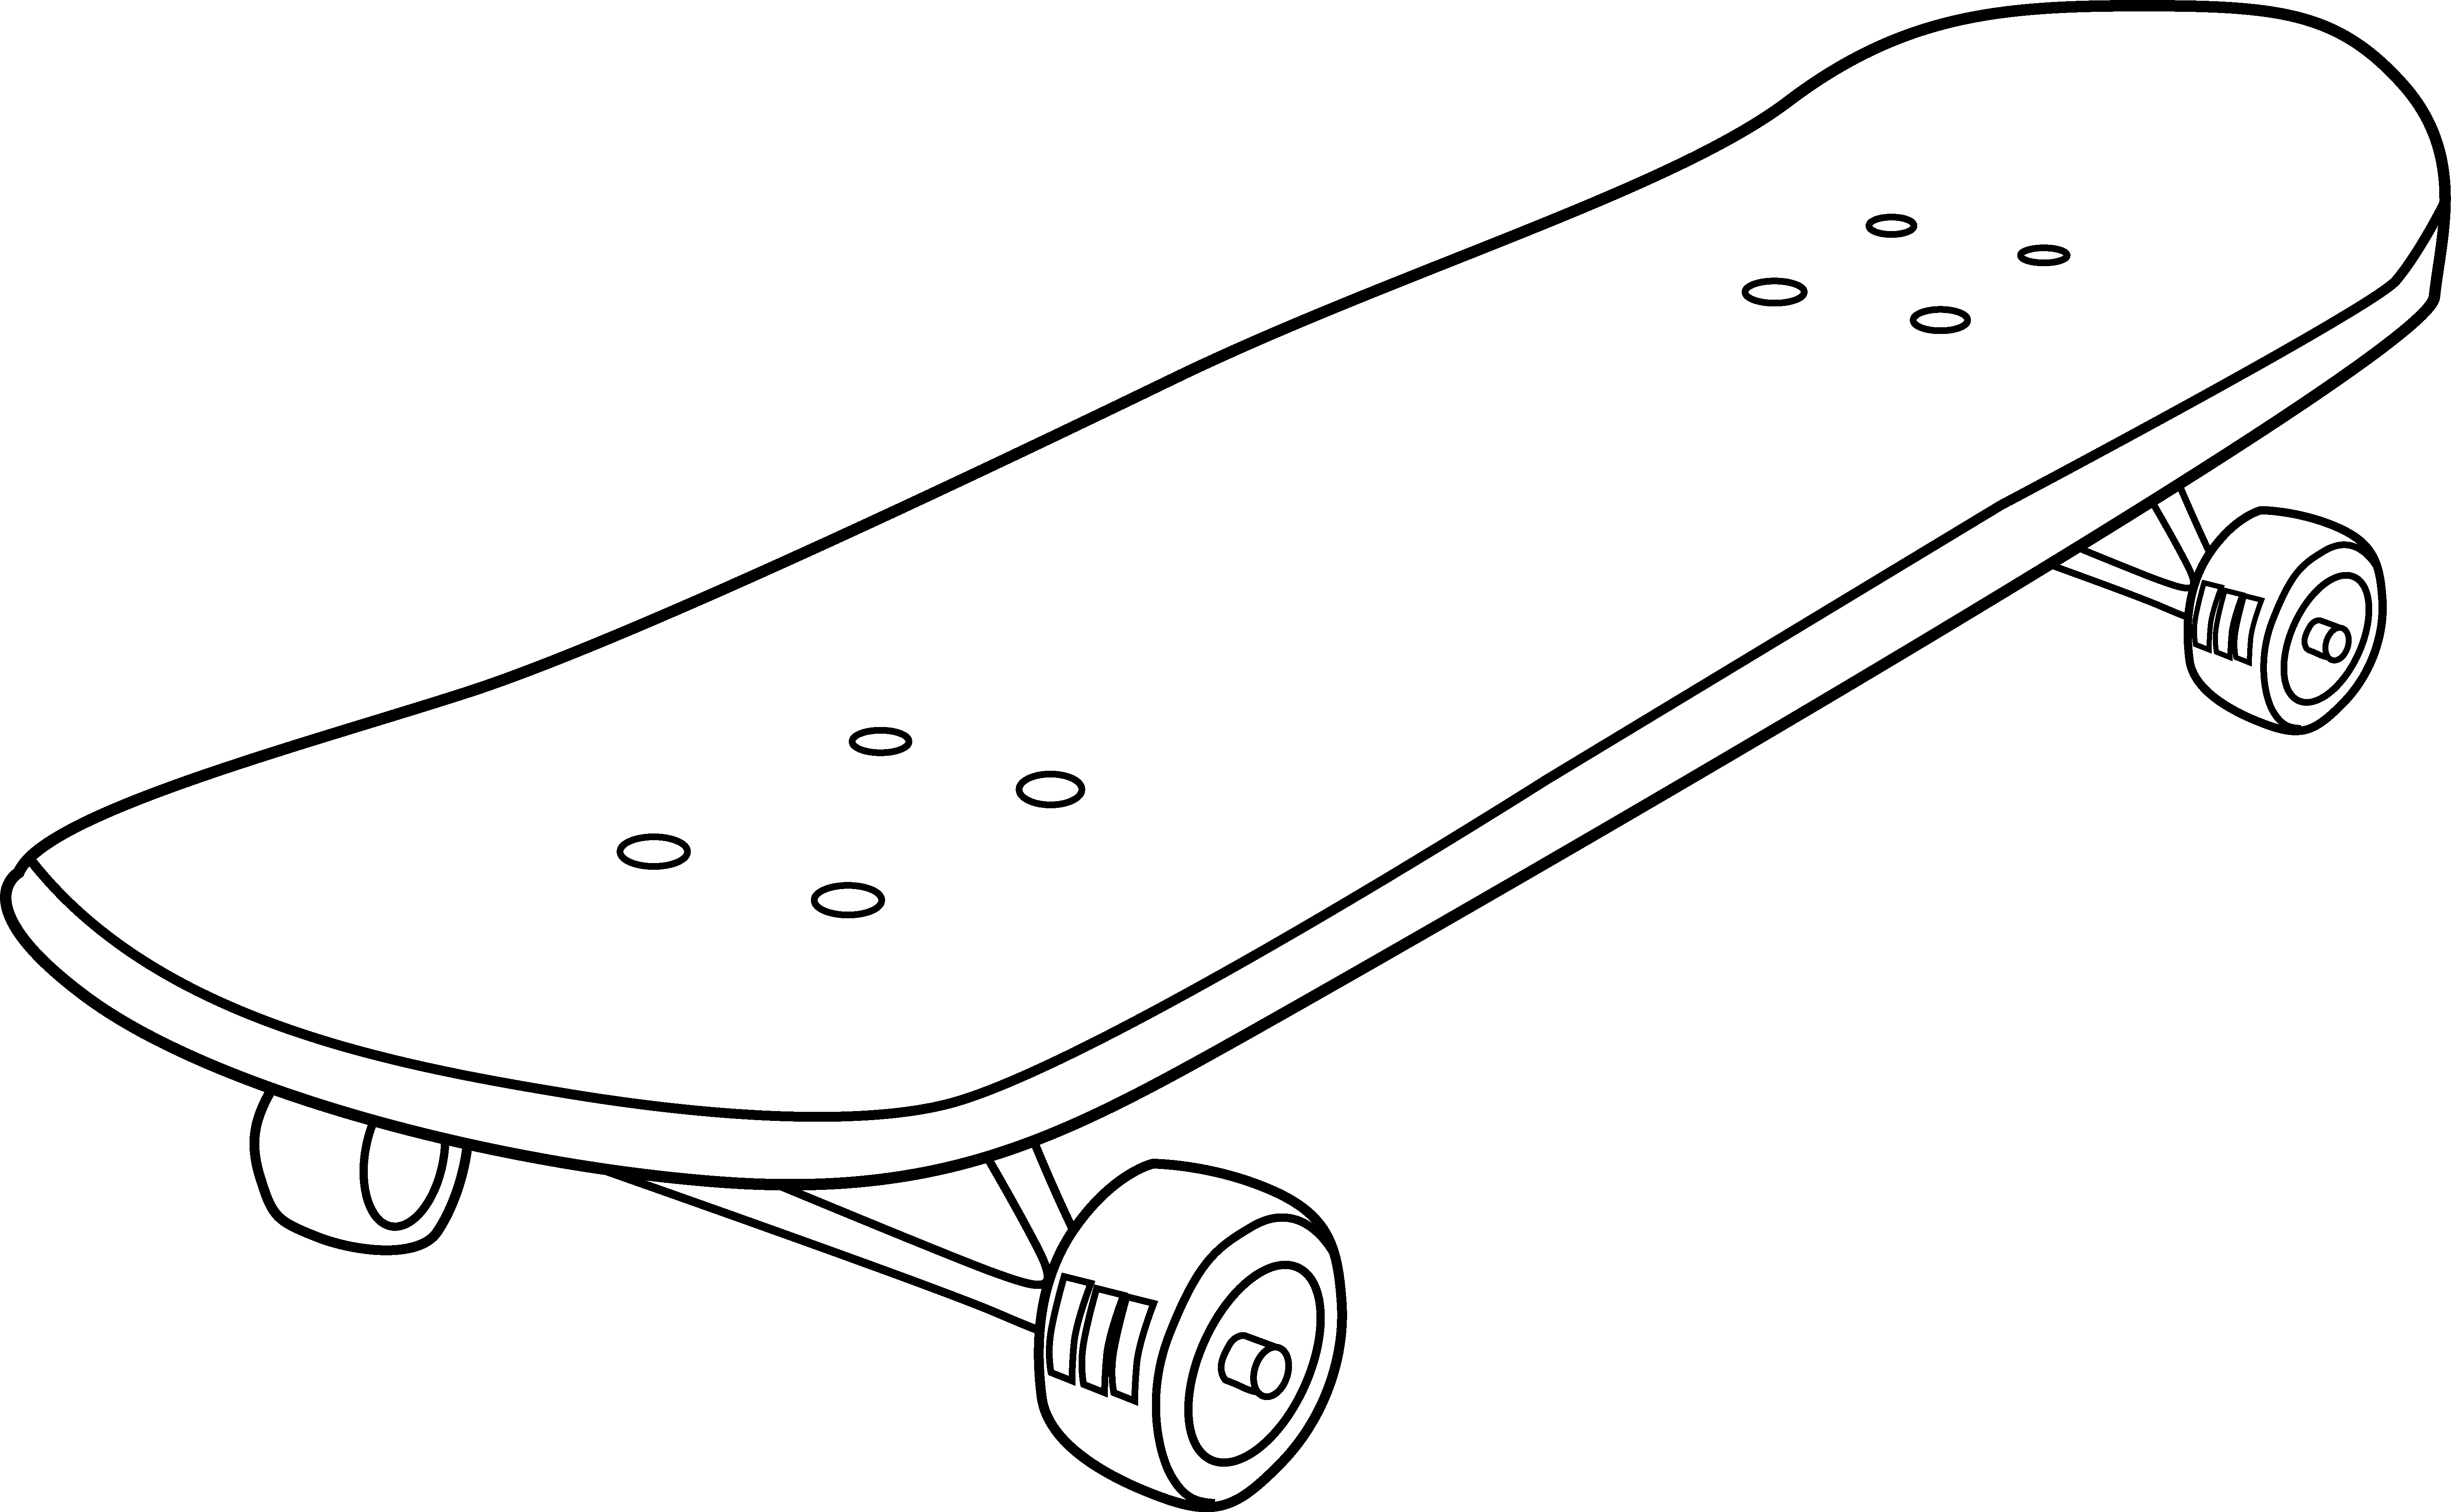 Skateboarding Terms Incorporate Common Slang